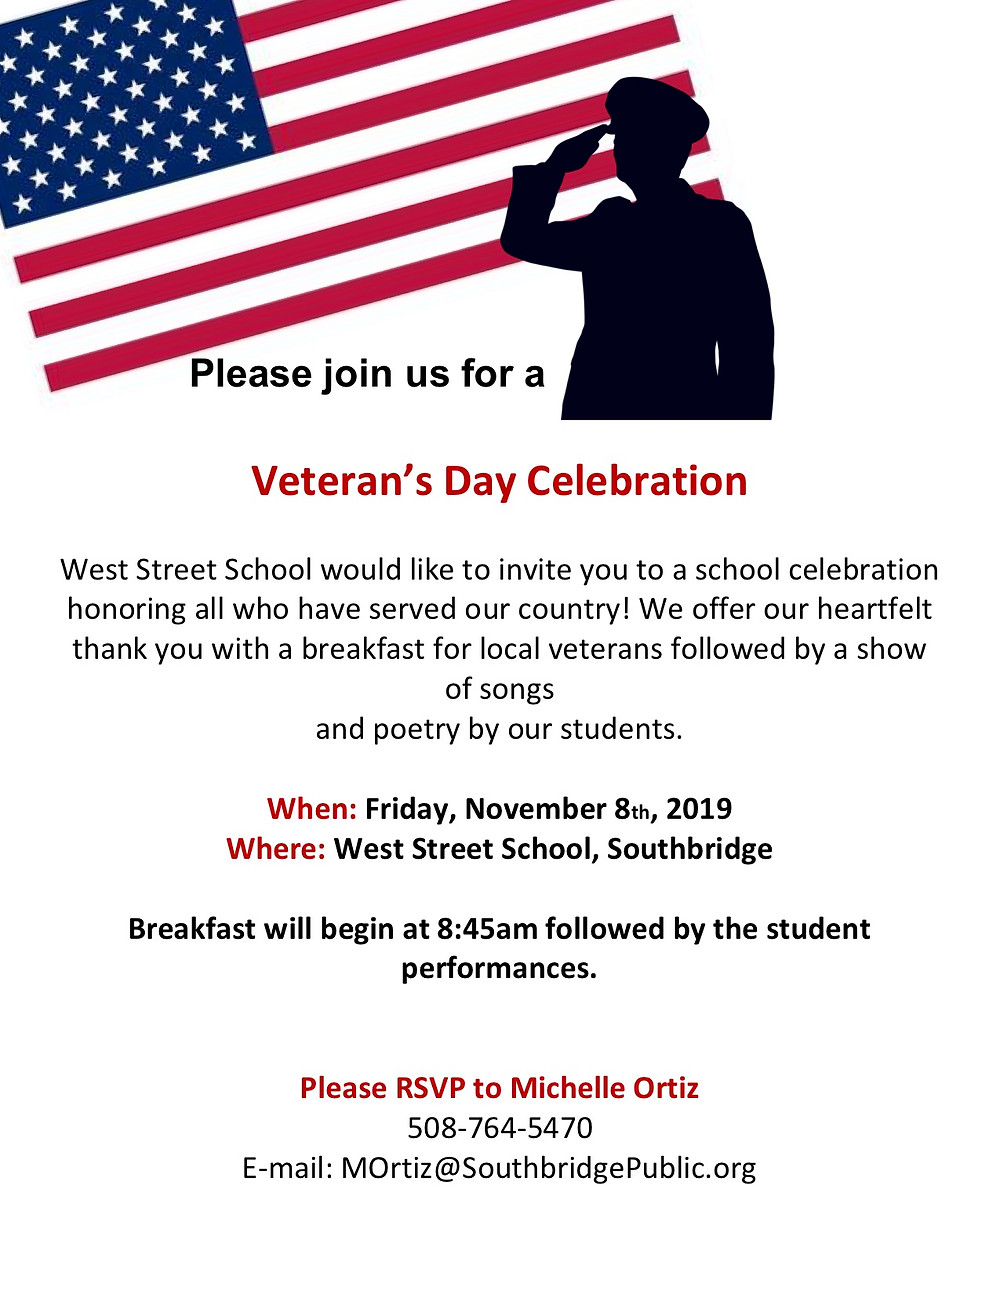 Flyer inviting local veterans to Veterans' Day celebration at West Street Elementary School